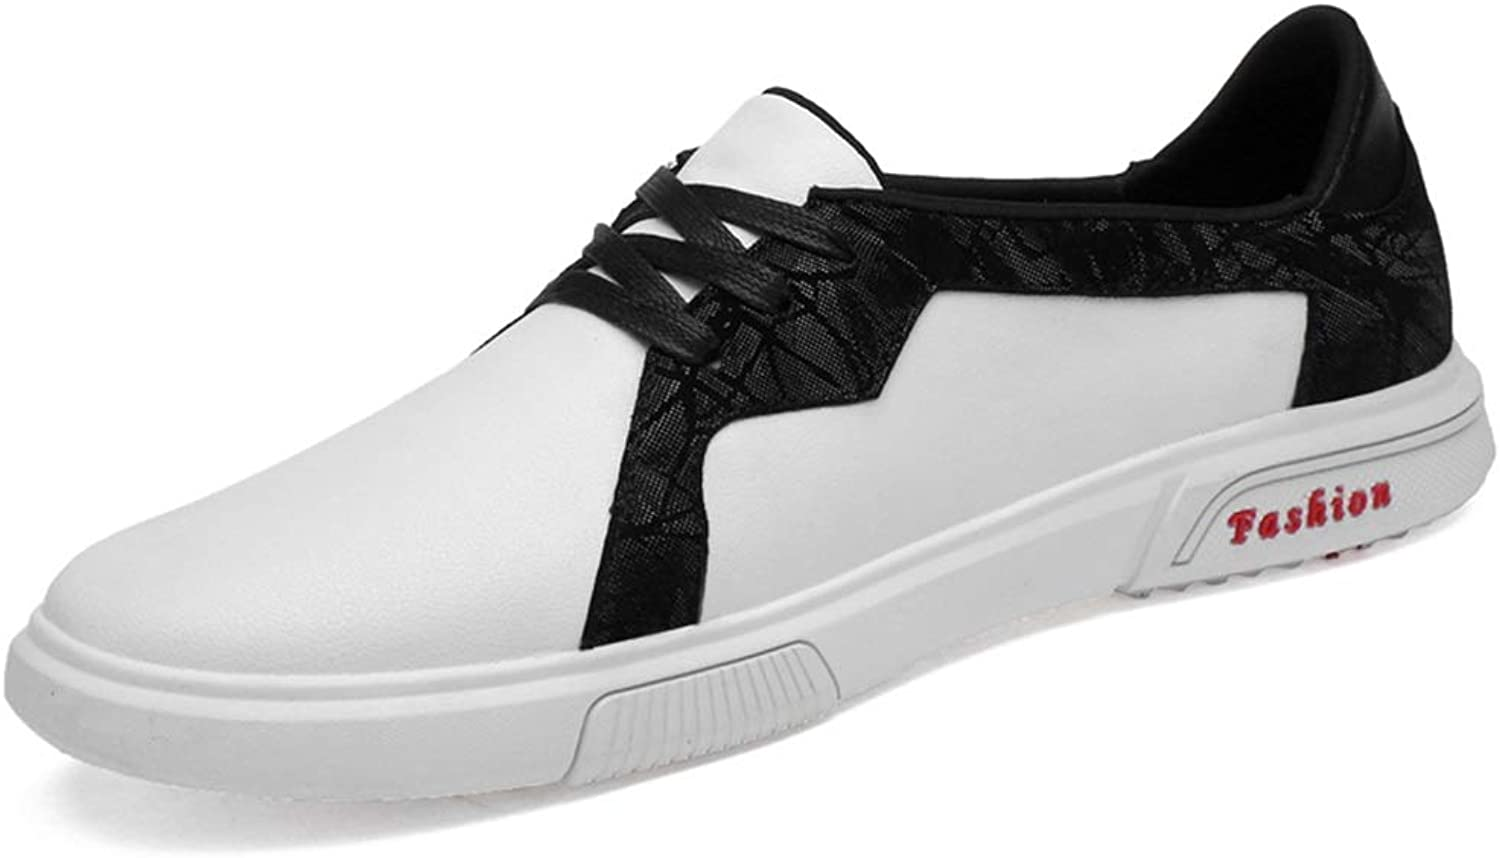 MXL Men's Classic Modern Oxford shoes Casual and Comfortable Low-top Lacing Up Leisure Formal shoes